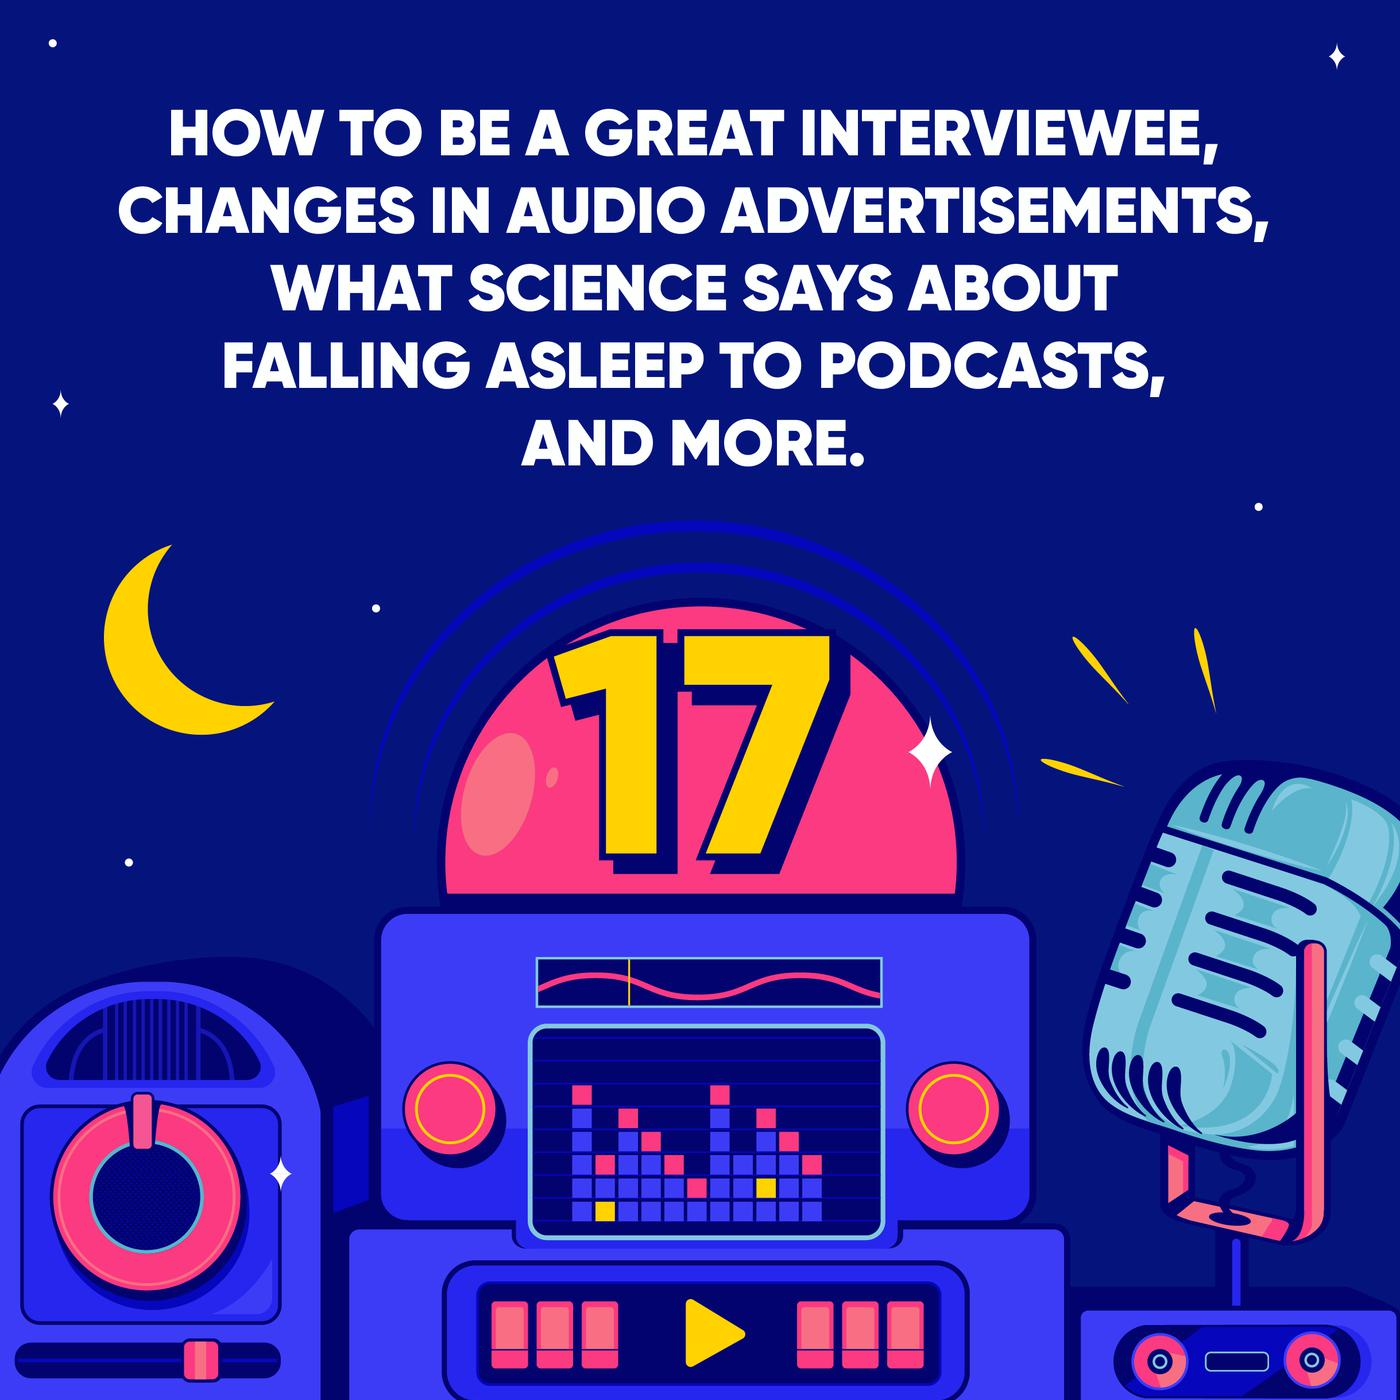 How to be a Great Interviewee, Changes in Audio Advertisements, What Science says About Falling Asleep to Podcasts, and More.